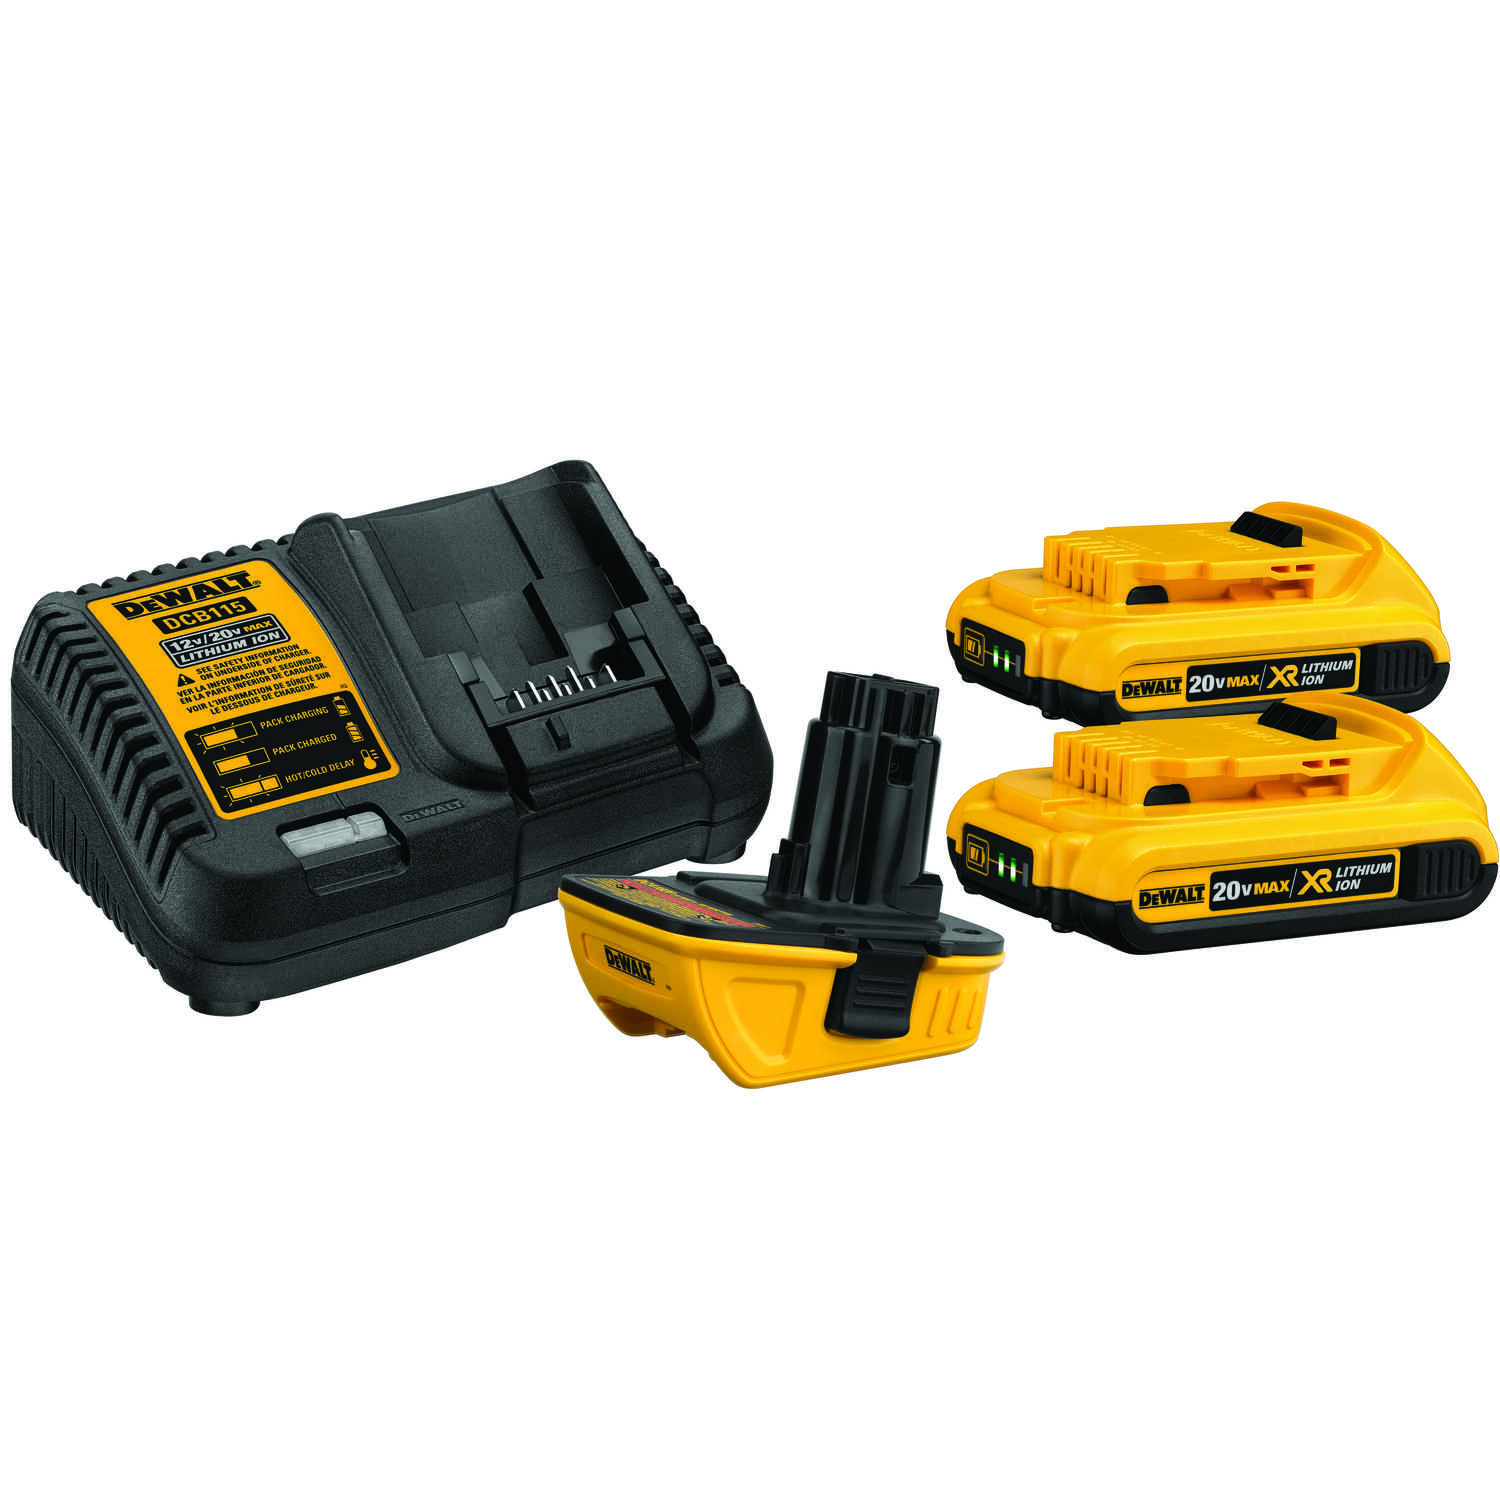 Dewalt Xr 20 Max Volts Lithium Ion Battery Charger Kit 4 Pc Ace Eliminator Circuit Board Perspex Mounting Plate Us